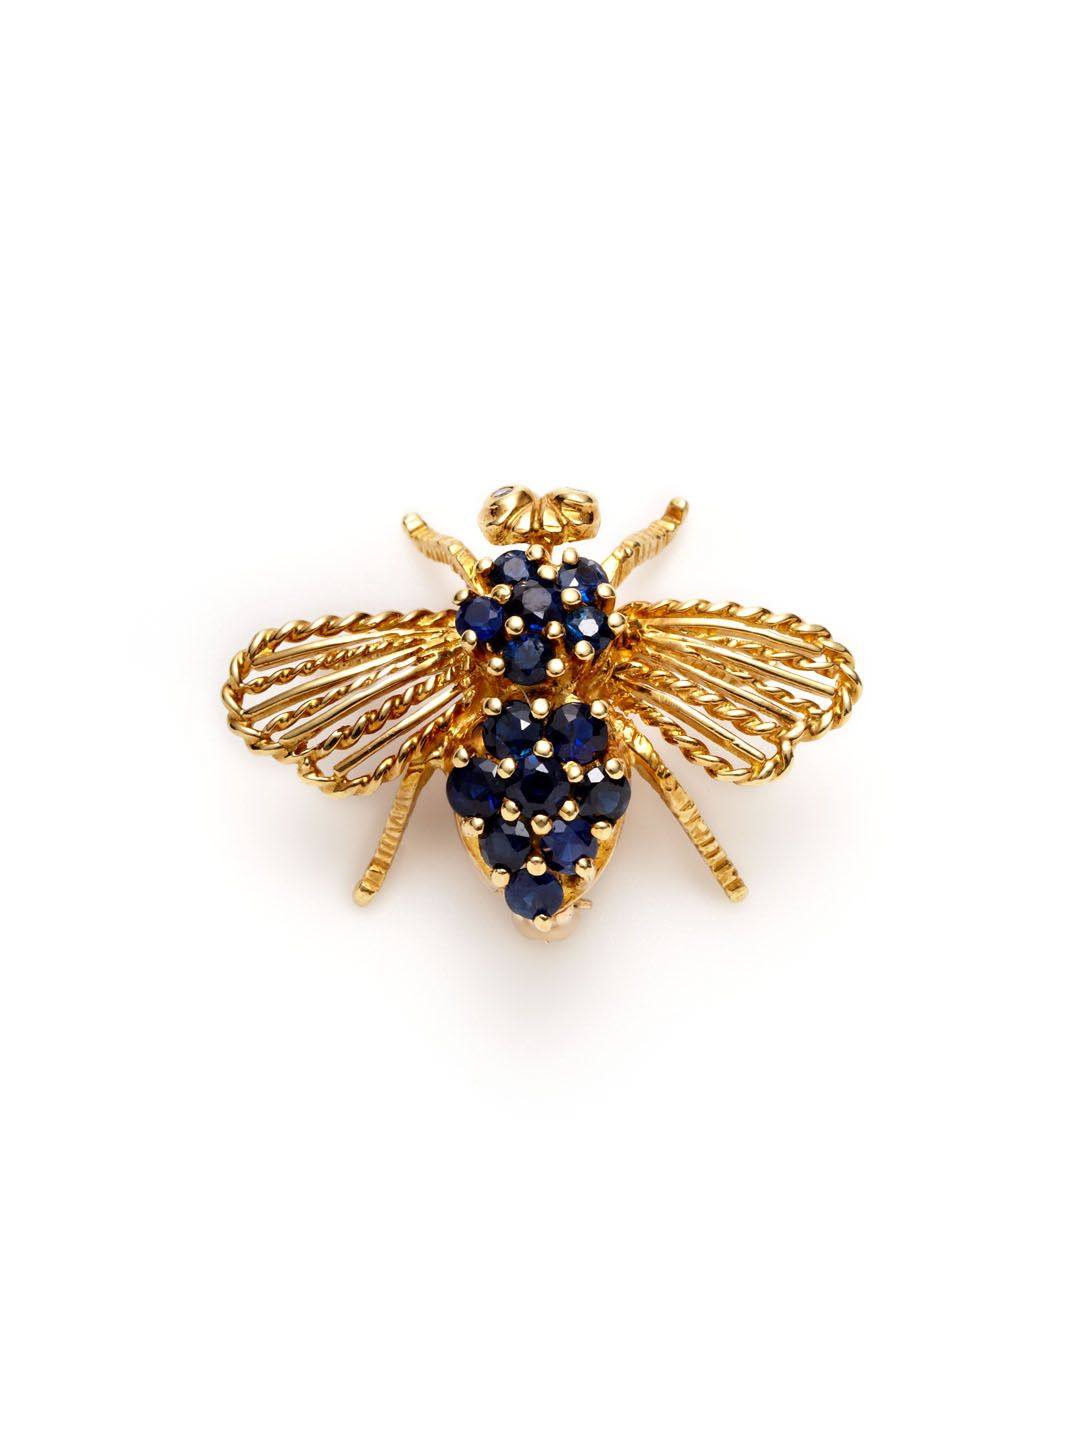 8bc80f50fa5 Cartier Sapphire Bumble Bee Brooch by Cartier at Gilt